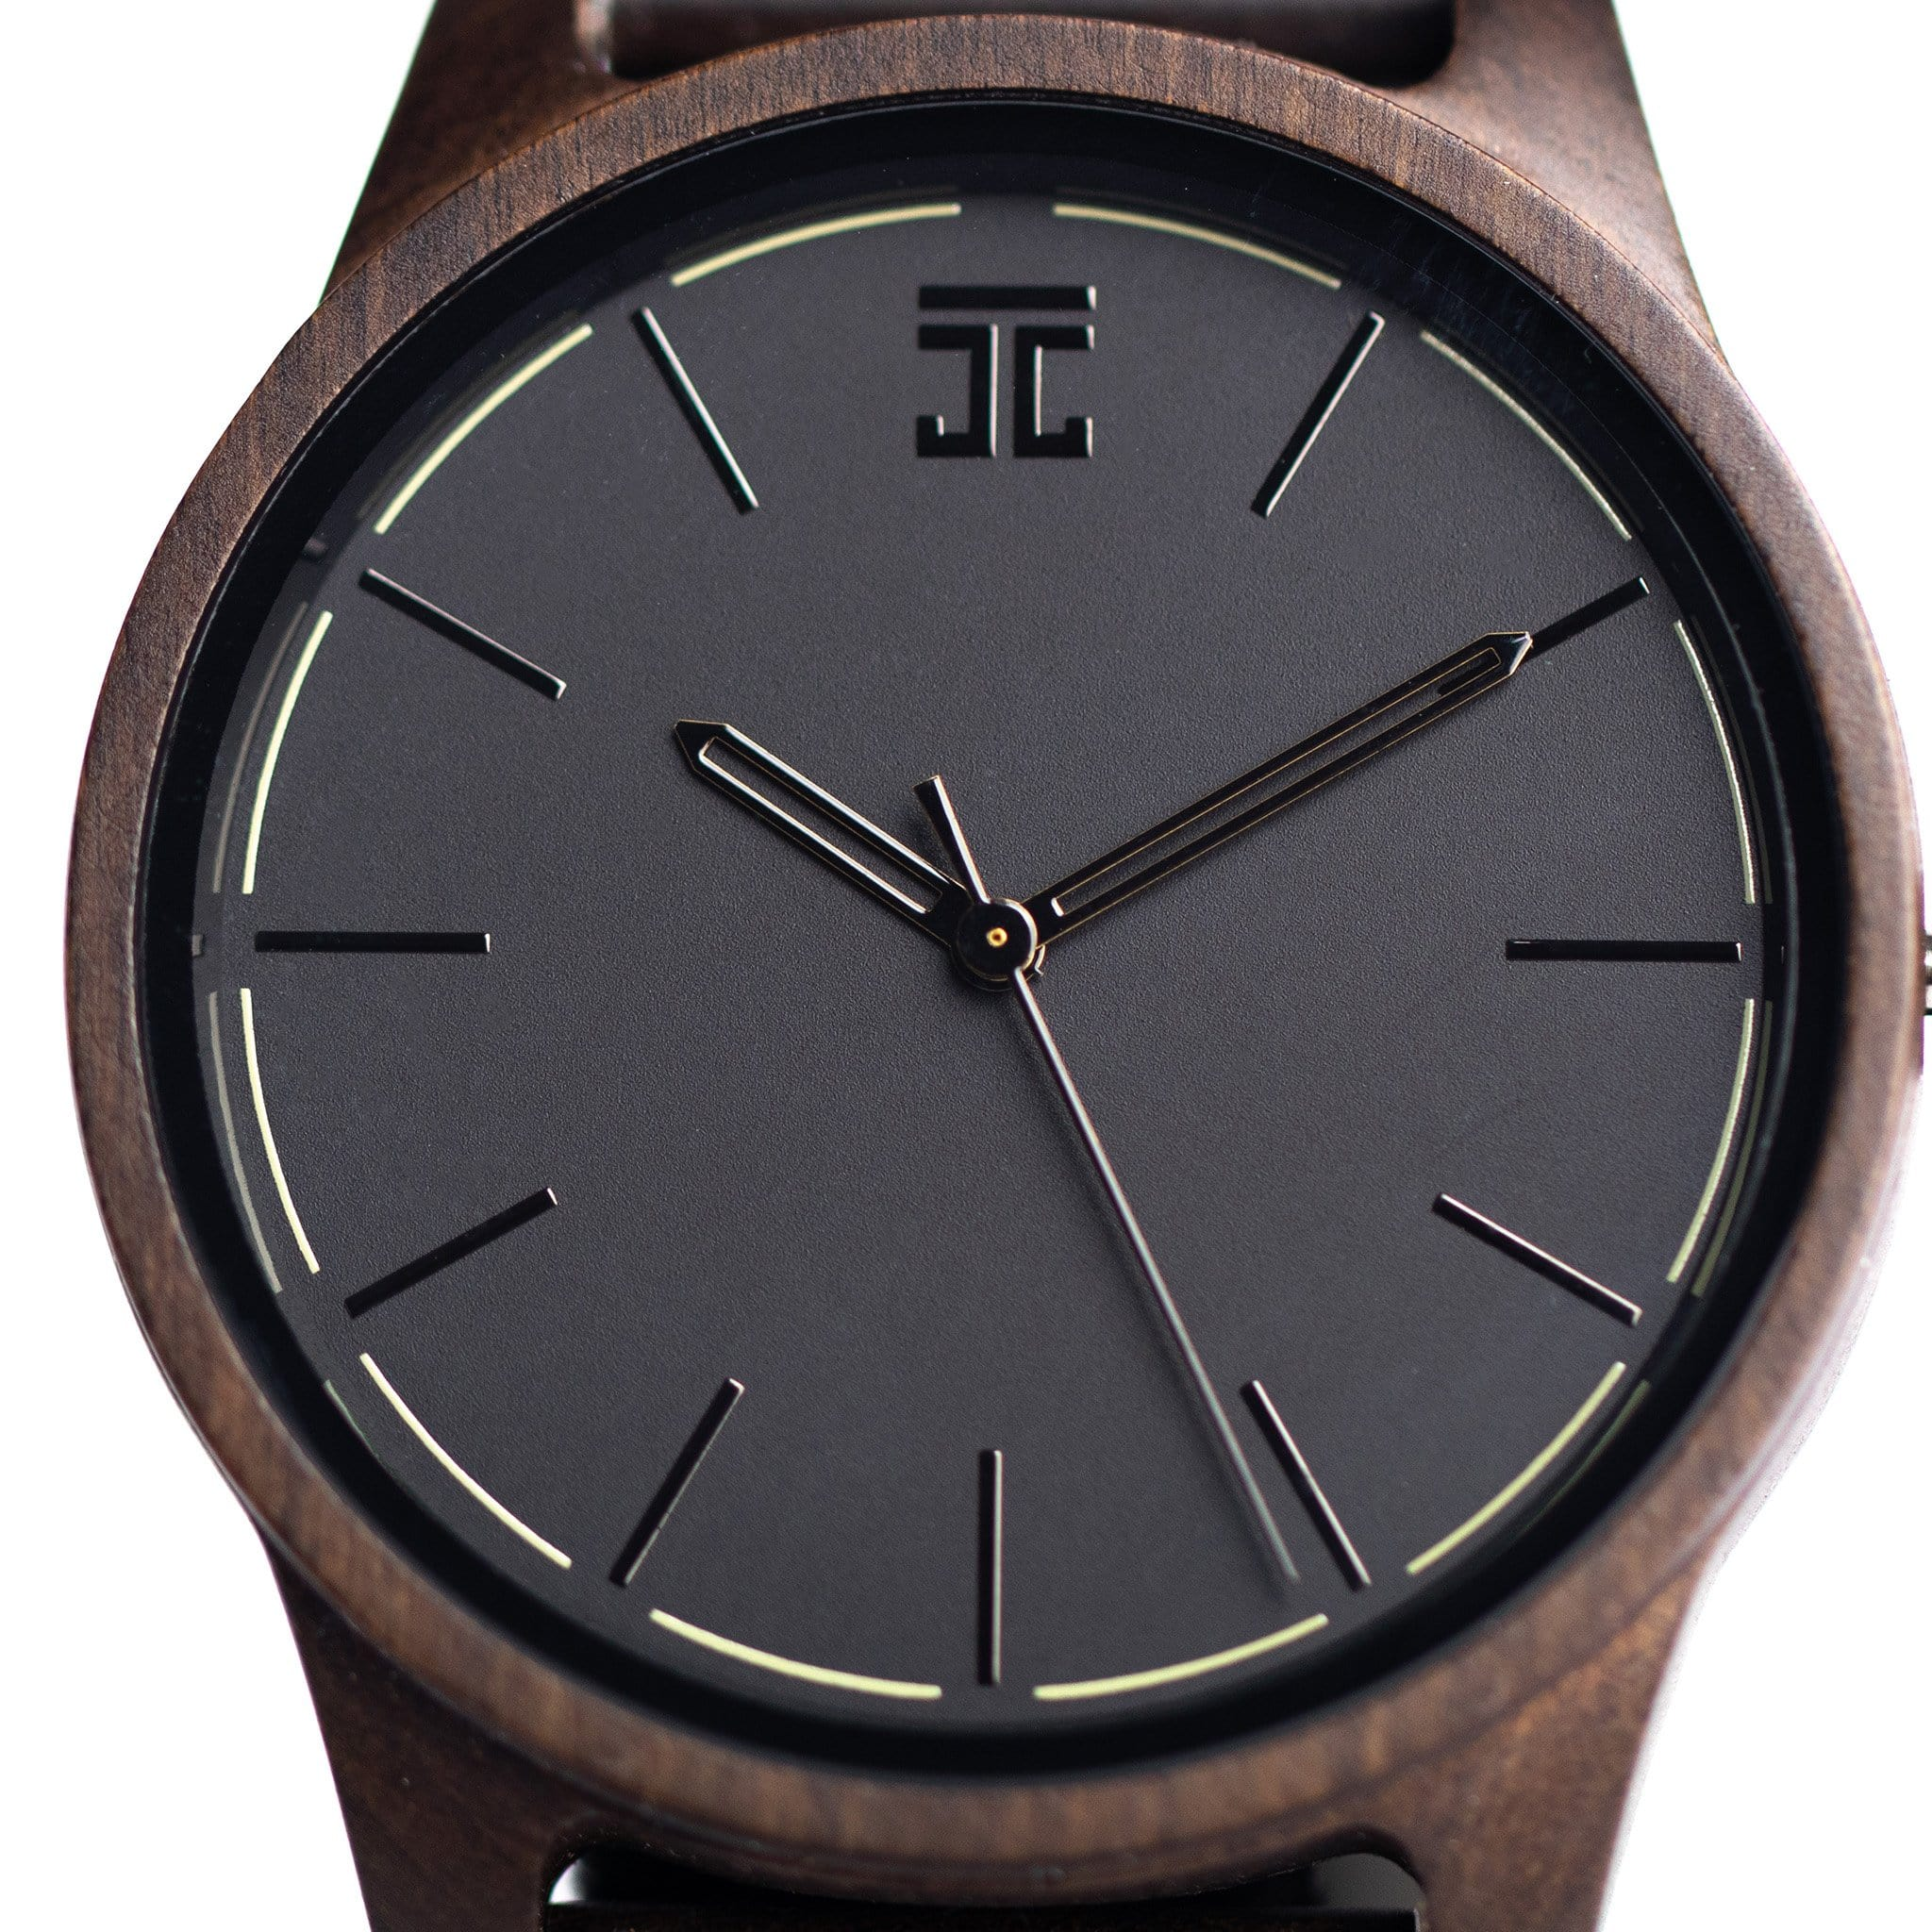 Dark Sandalwood - Wooden Watches and Sunglasses - Joycoast